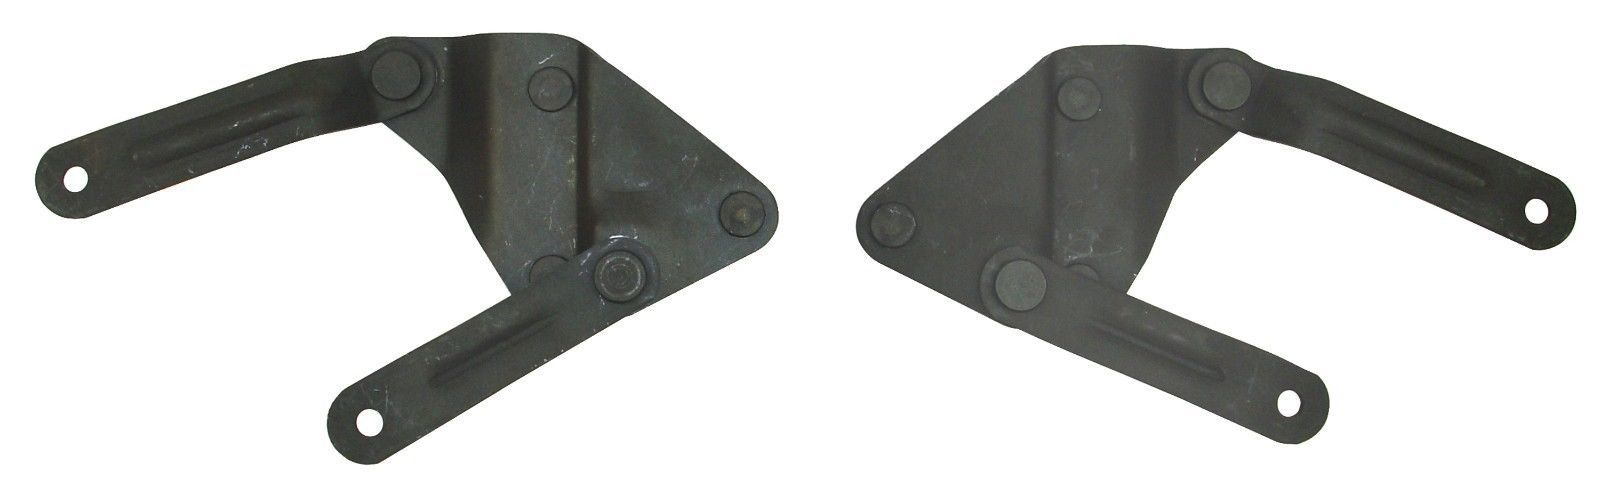 1948 1949 1950 1951 1952 Ford Truck Outer Hood Hinge Side Plates